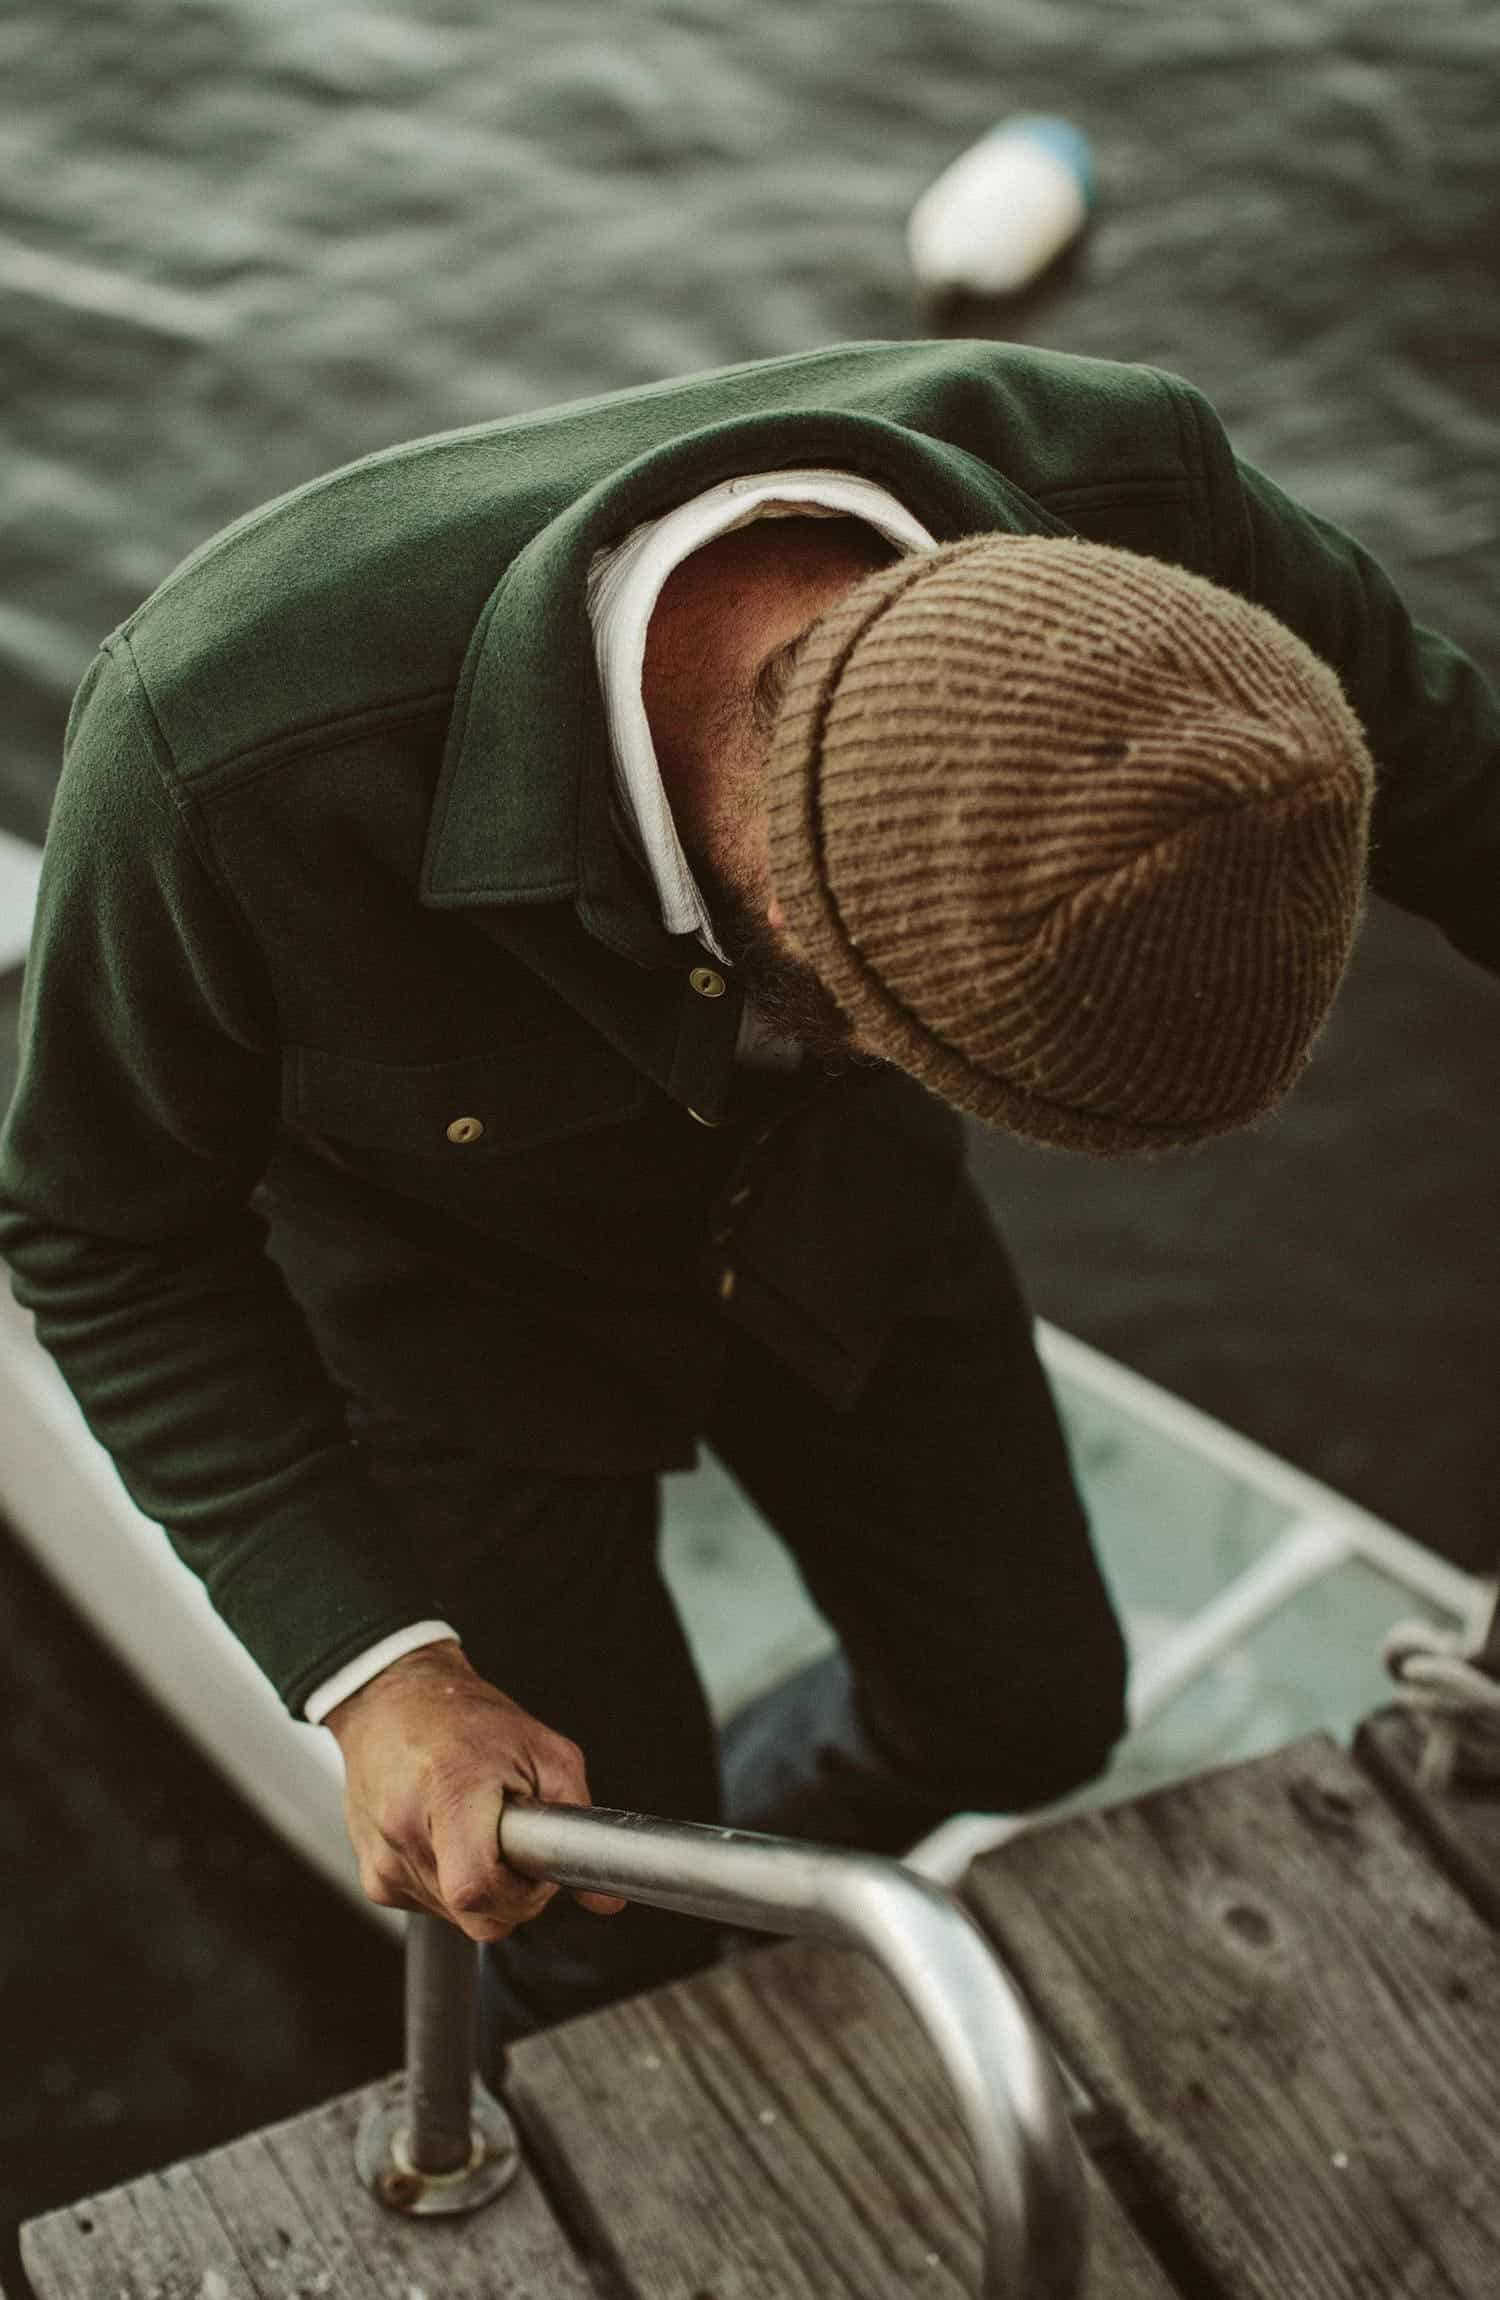 マリタイムシャツジャケット The Maritime Shirt Jacket in Olive Collection